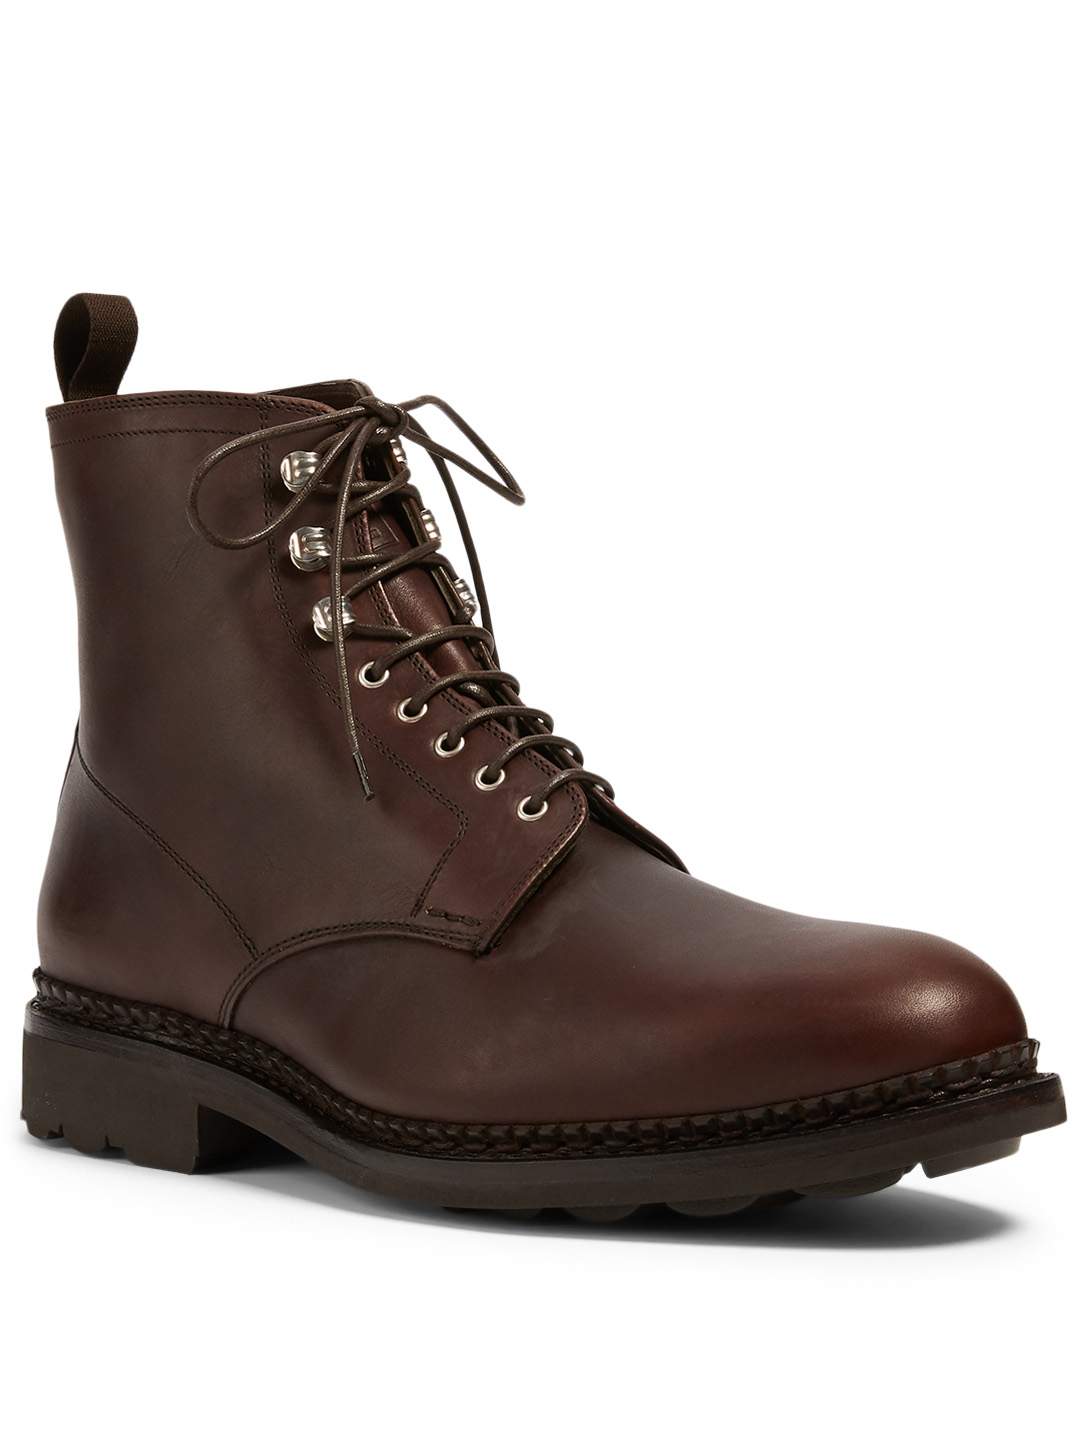 HESCHUNG Hêtre Leather Lace-Up Ankle Boots Men's Brown